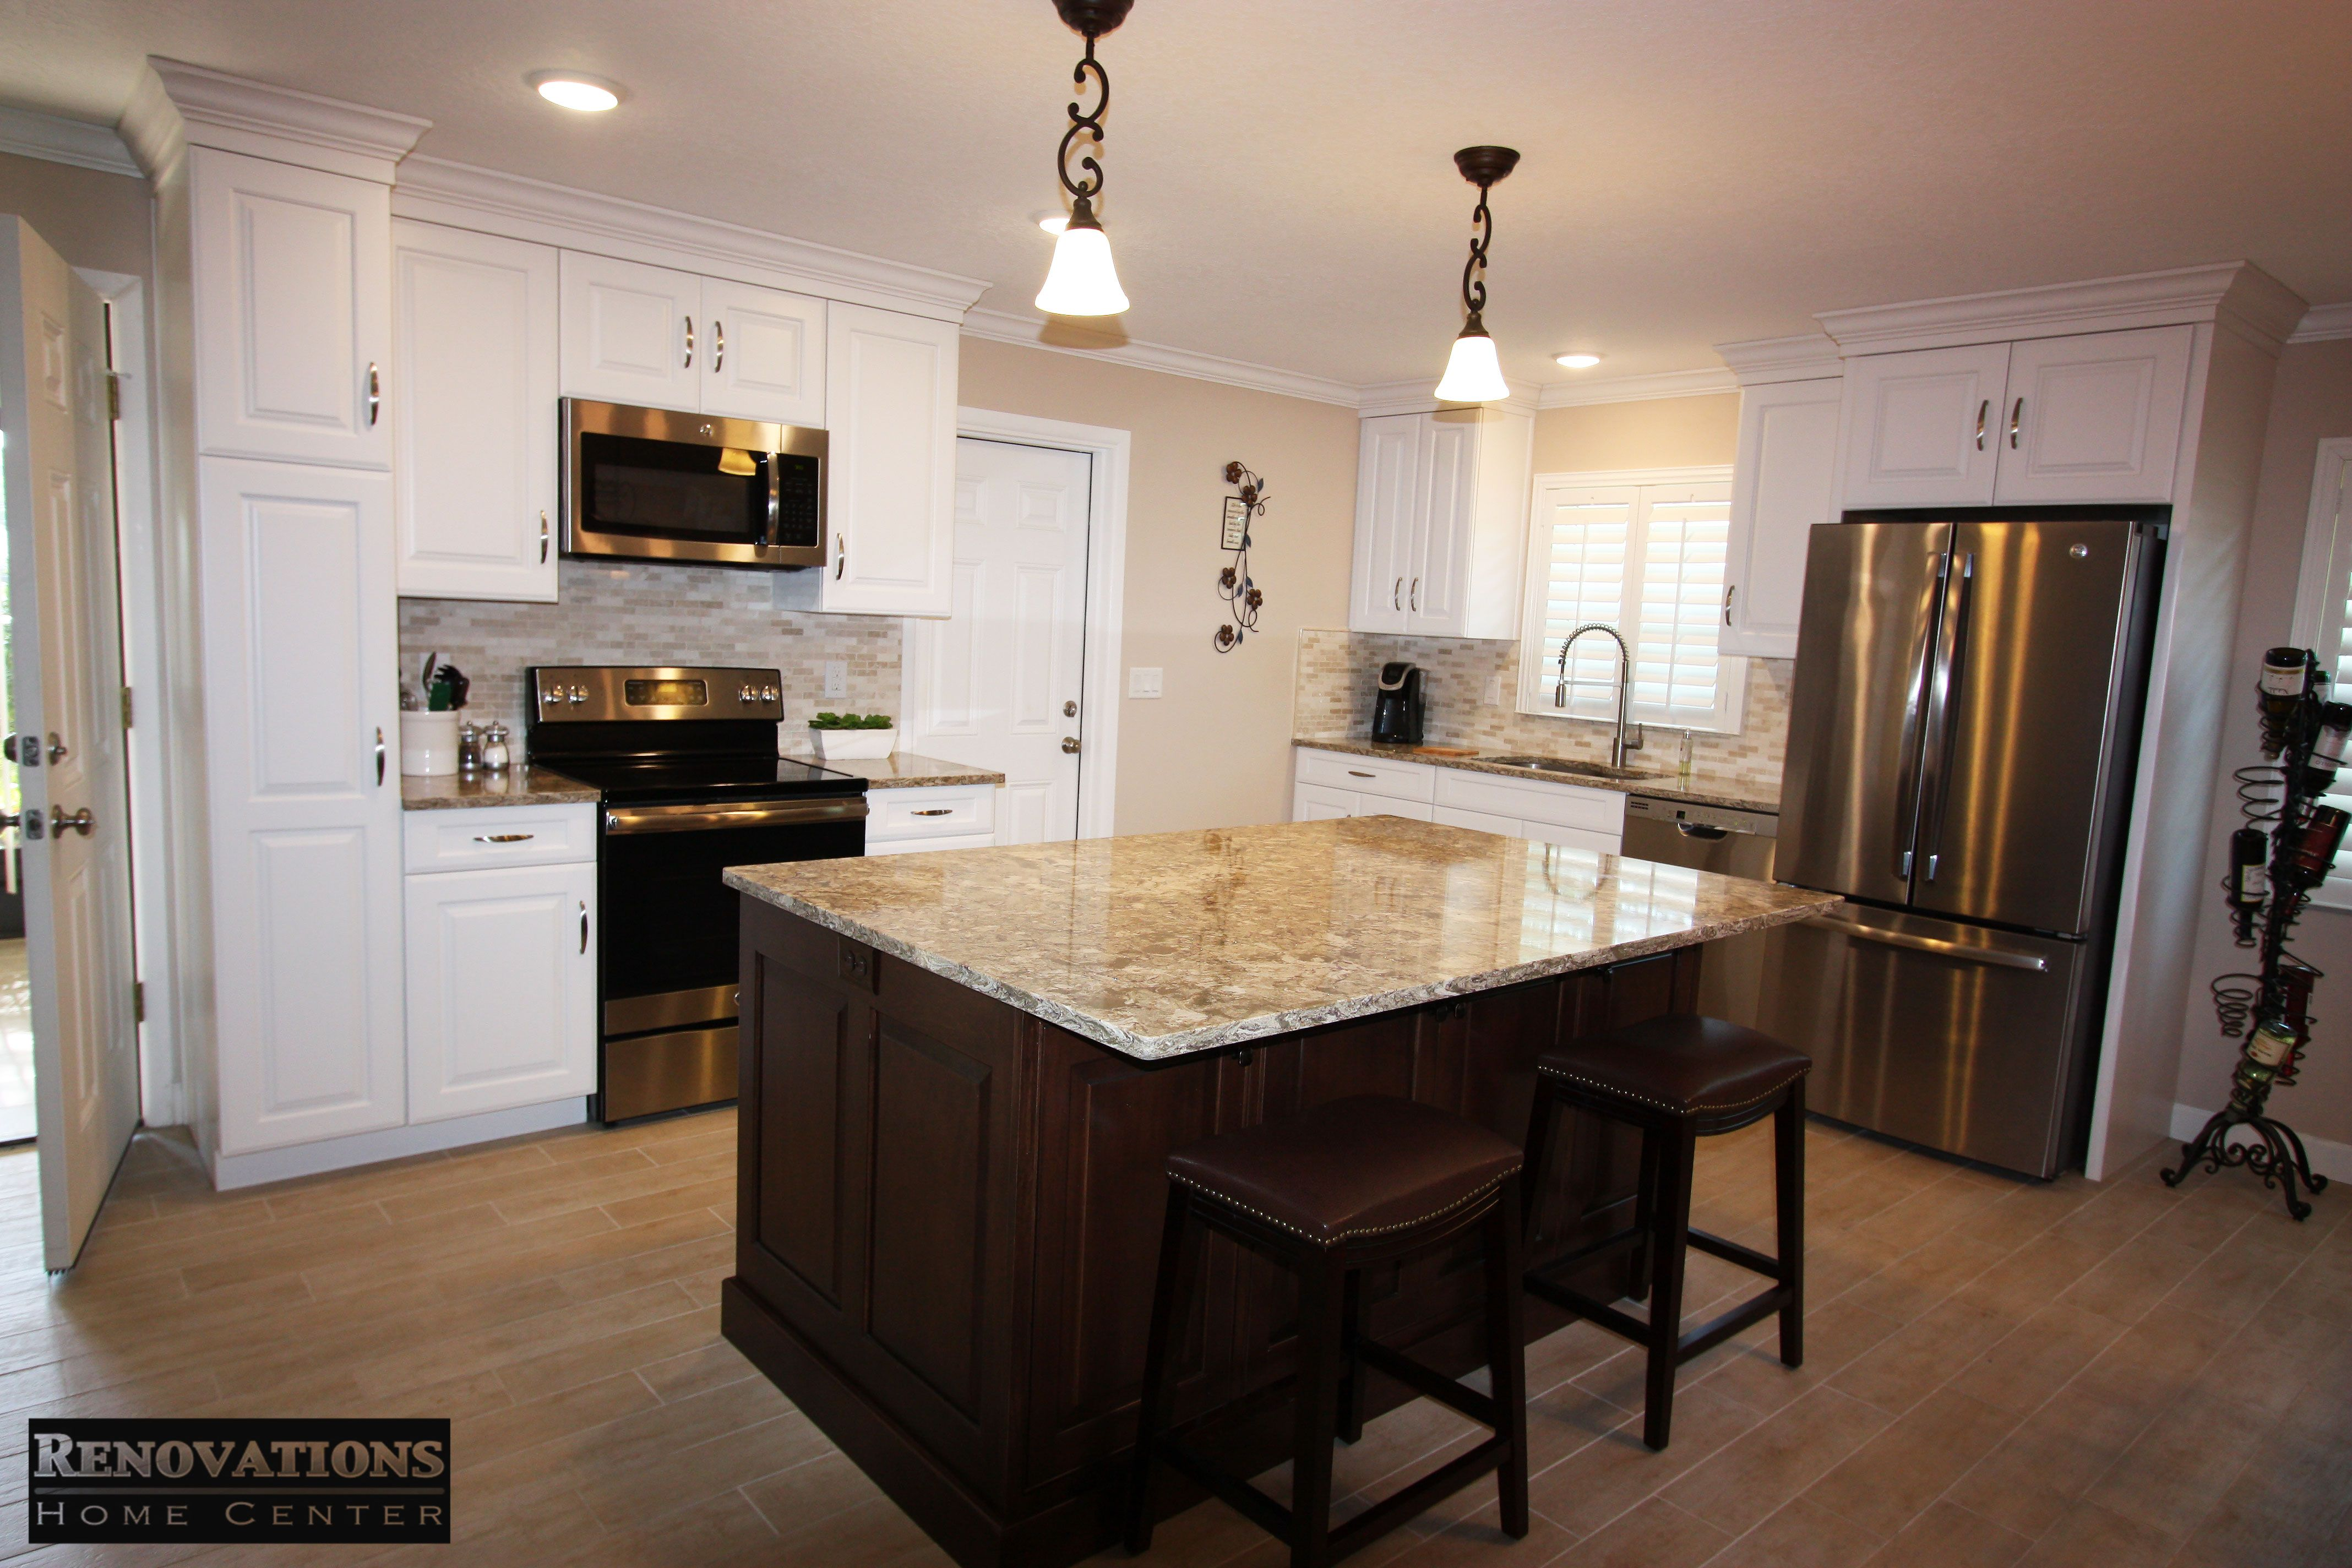 We Would Like To Feature Our Latest His And Her Project In Collaboration With A Lovely Co Kitchen And Bath Remodeling Kitchen Bathroom Remodel Home Remodeling